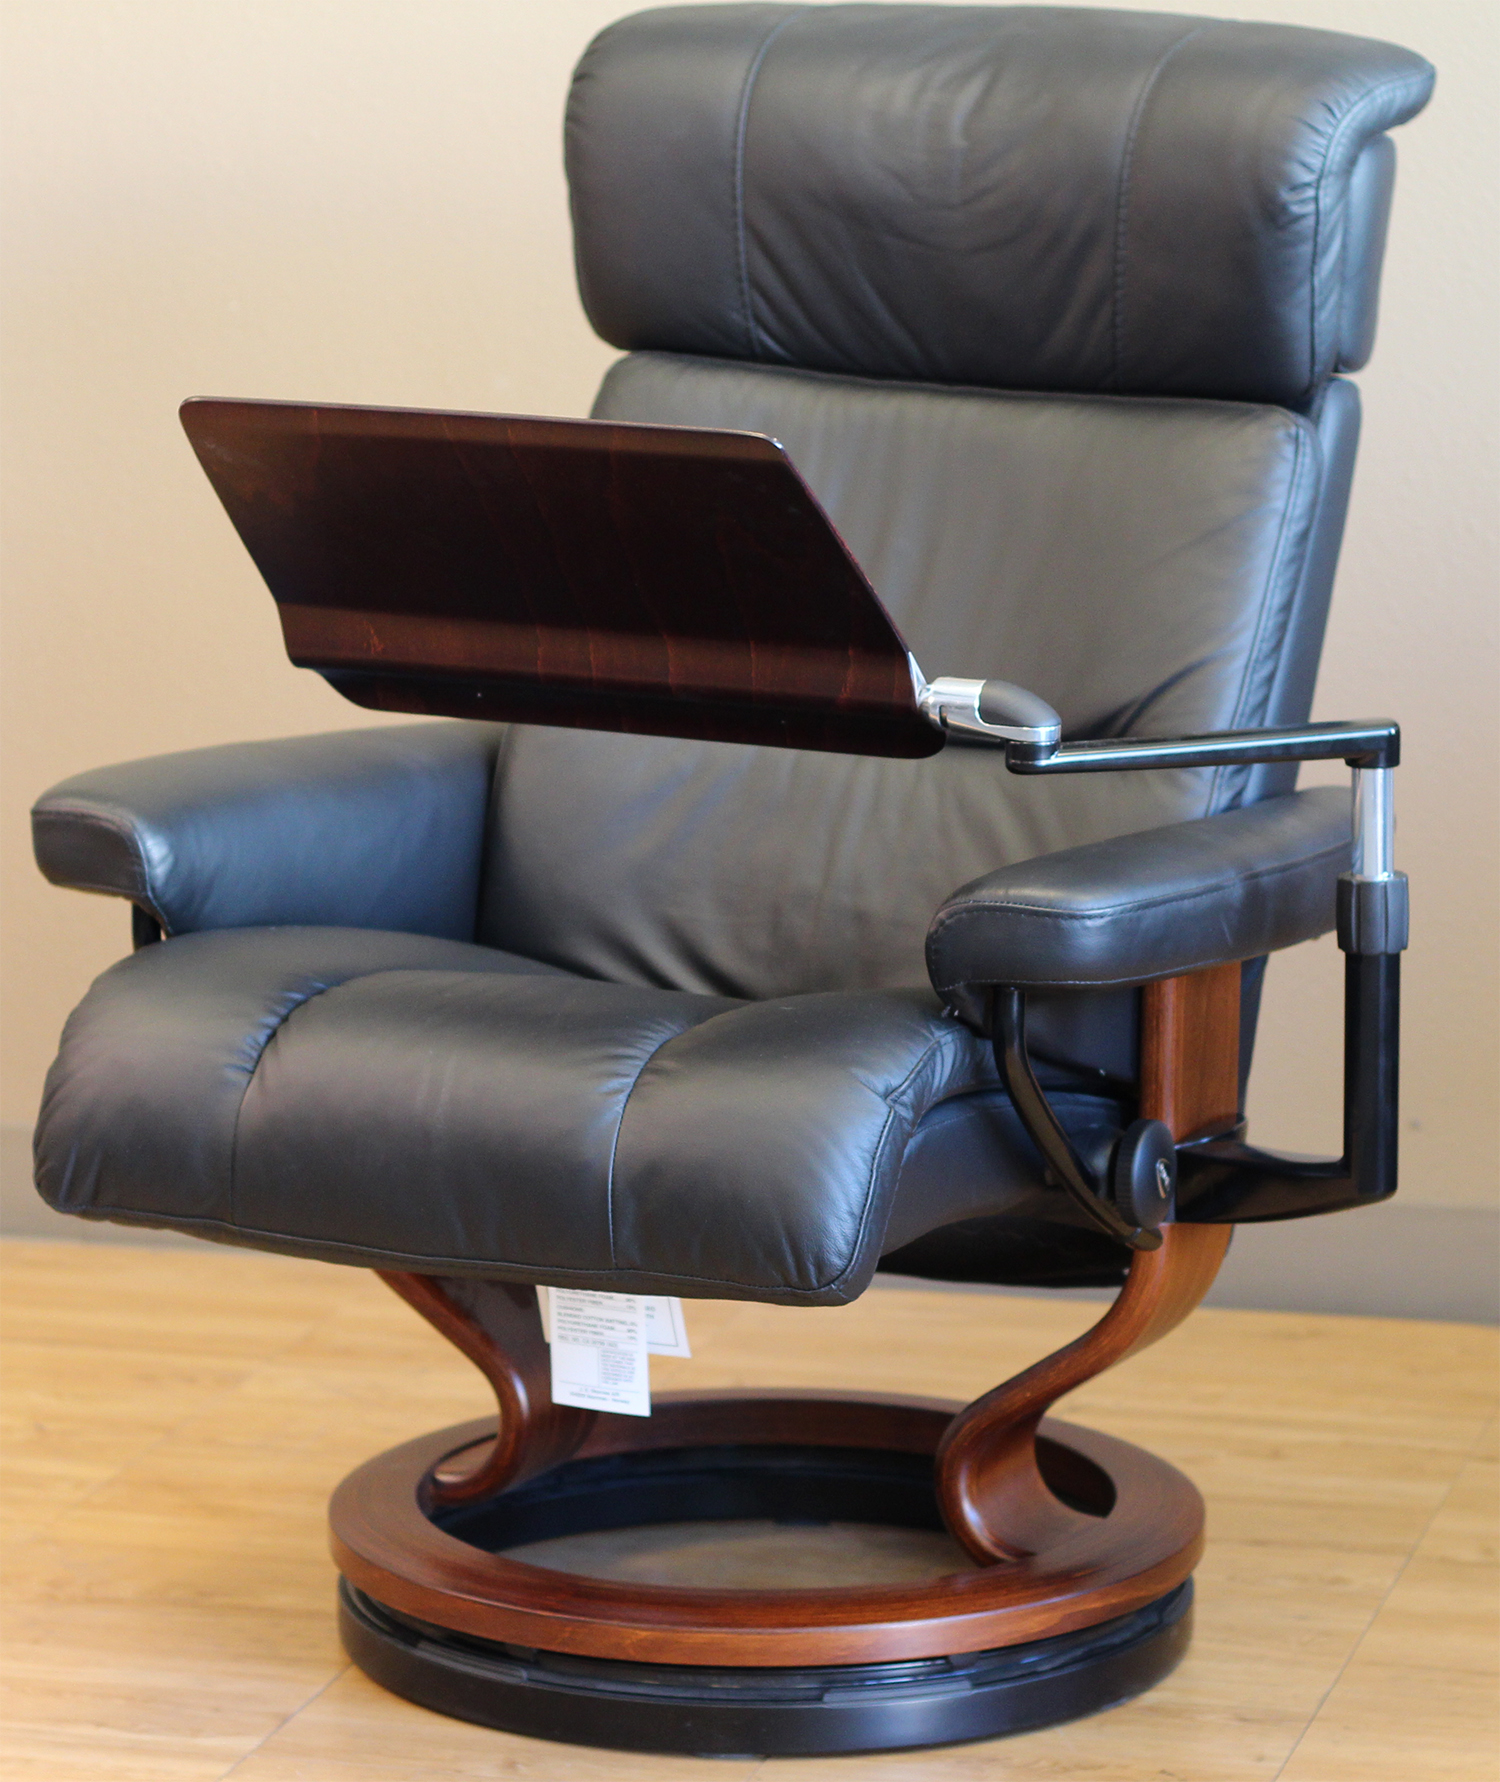 Stressless Personal Computer Table Folding Positions